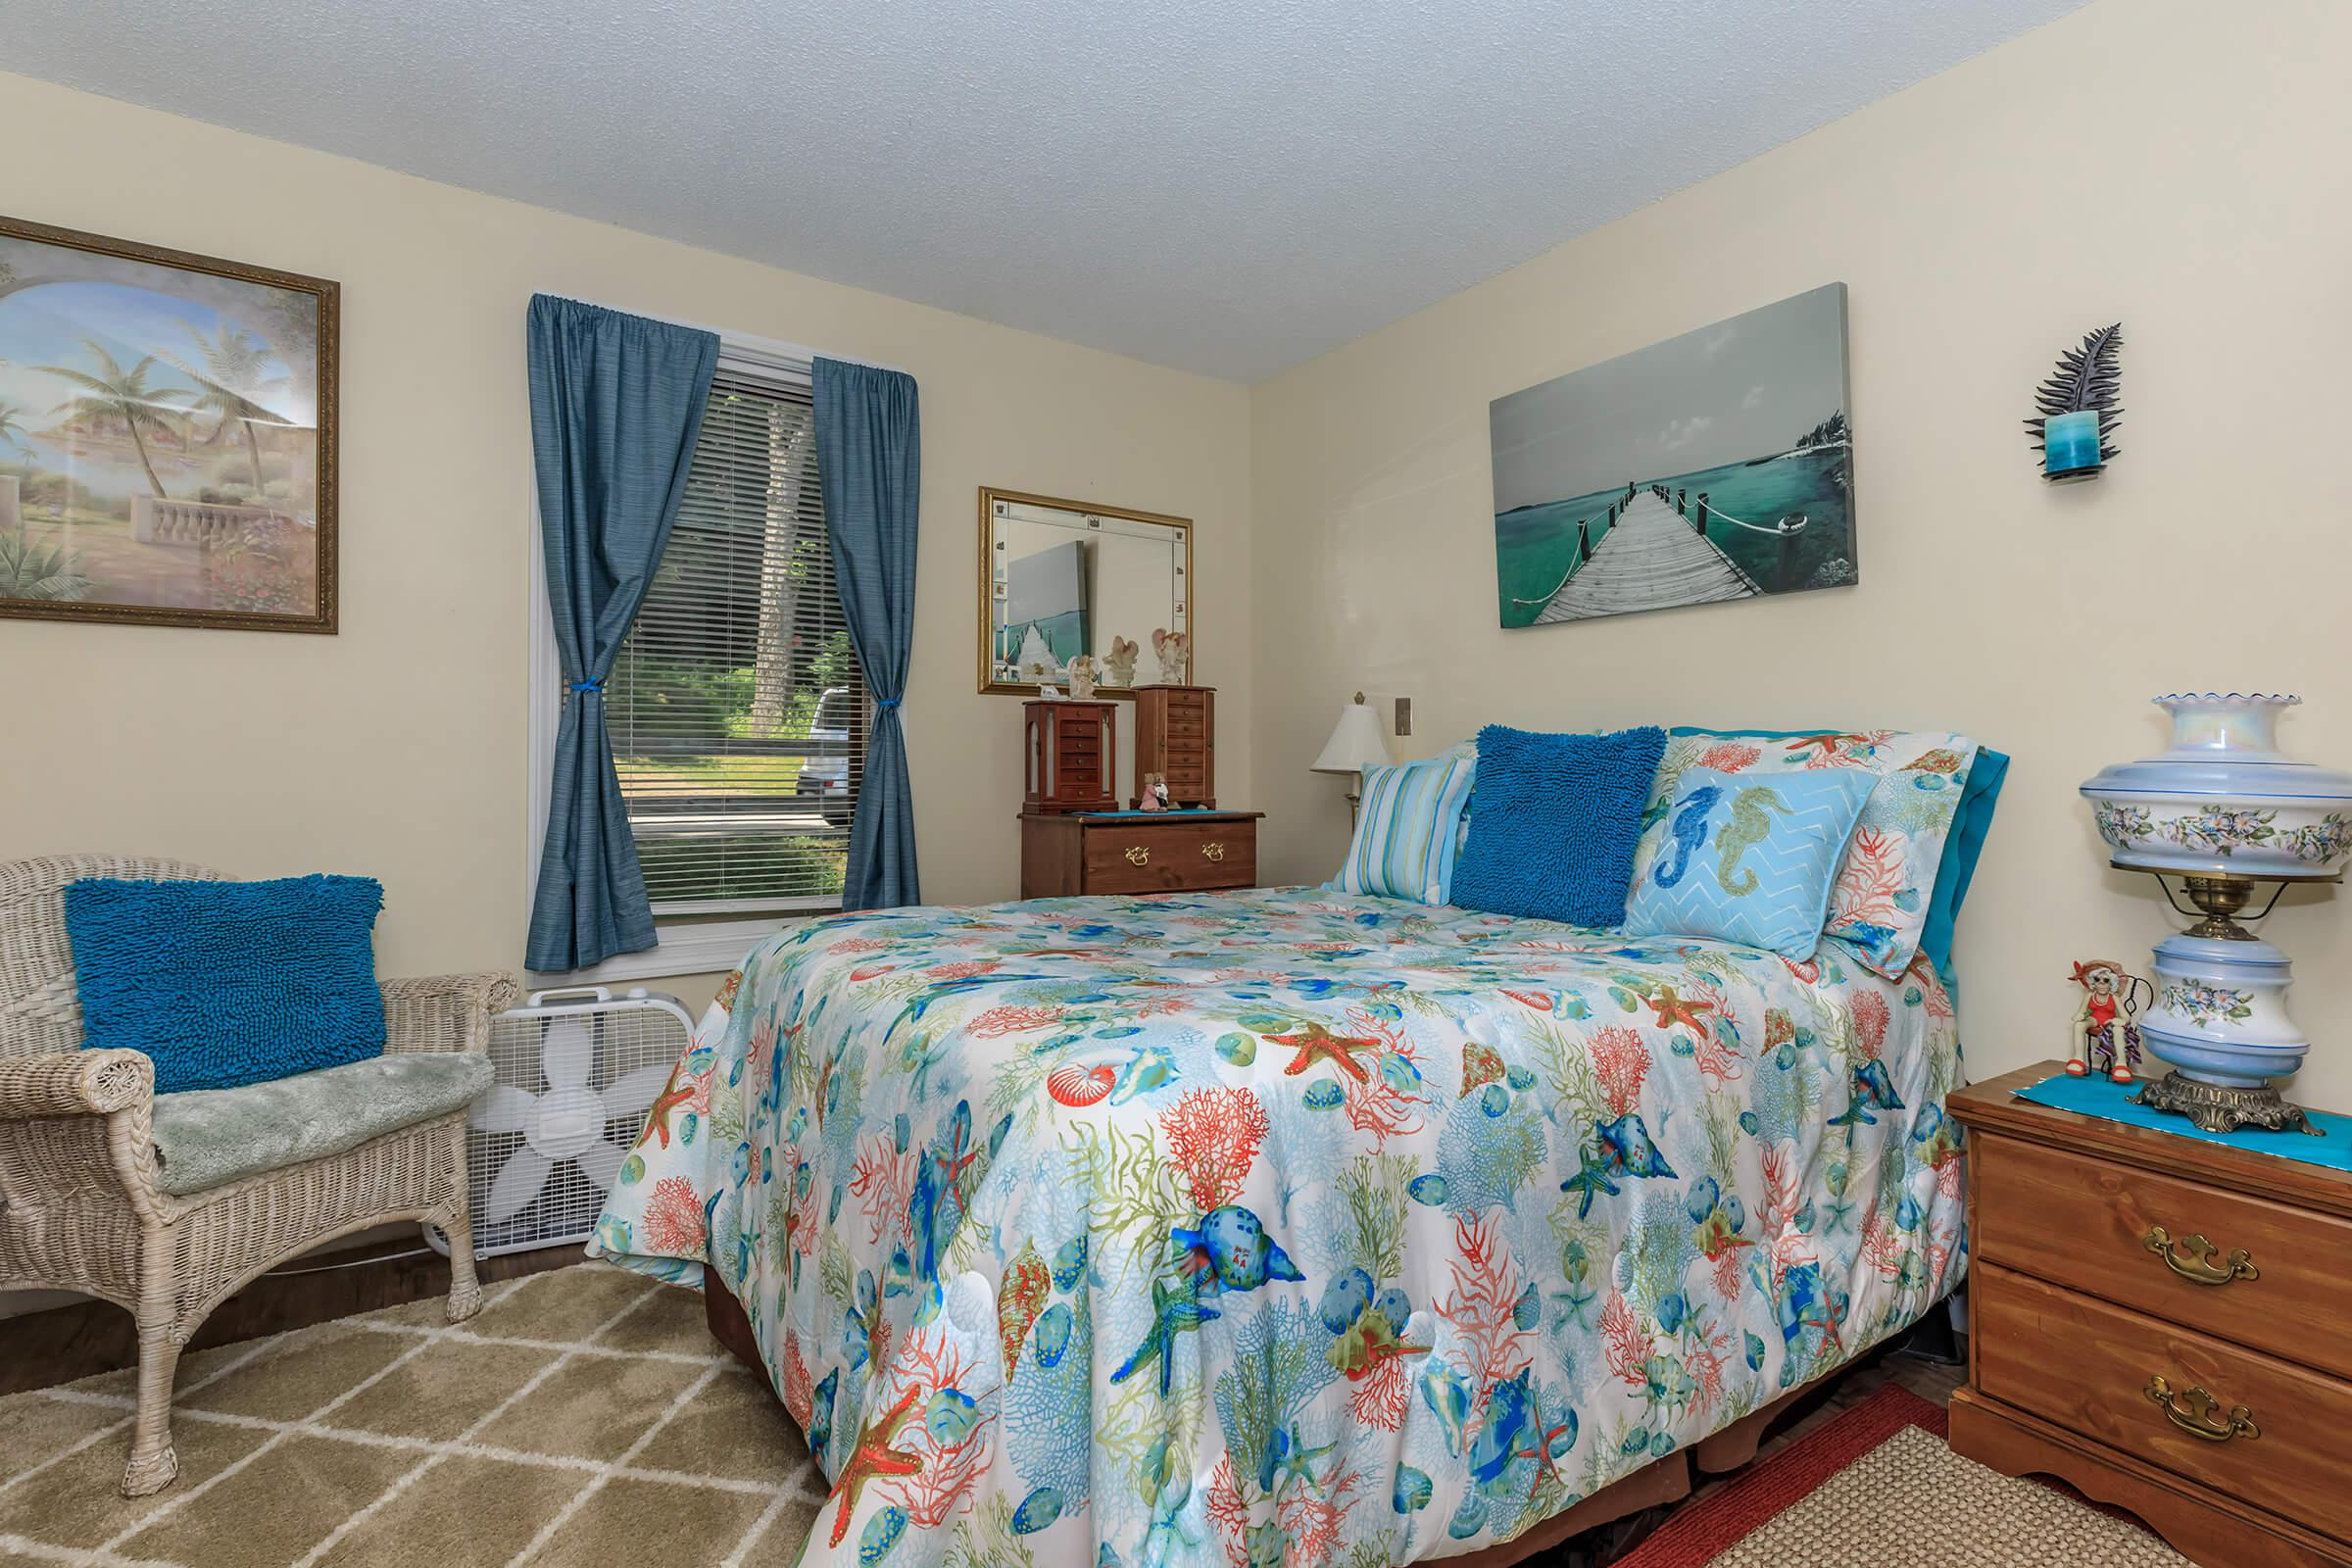 a colorful living room with blue walls and a bed